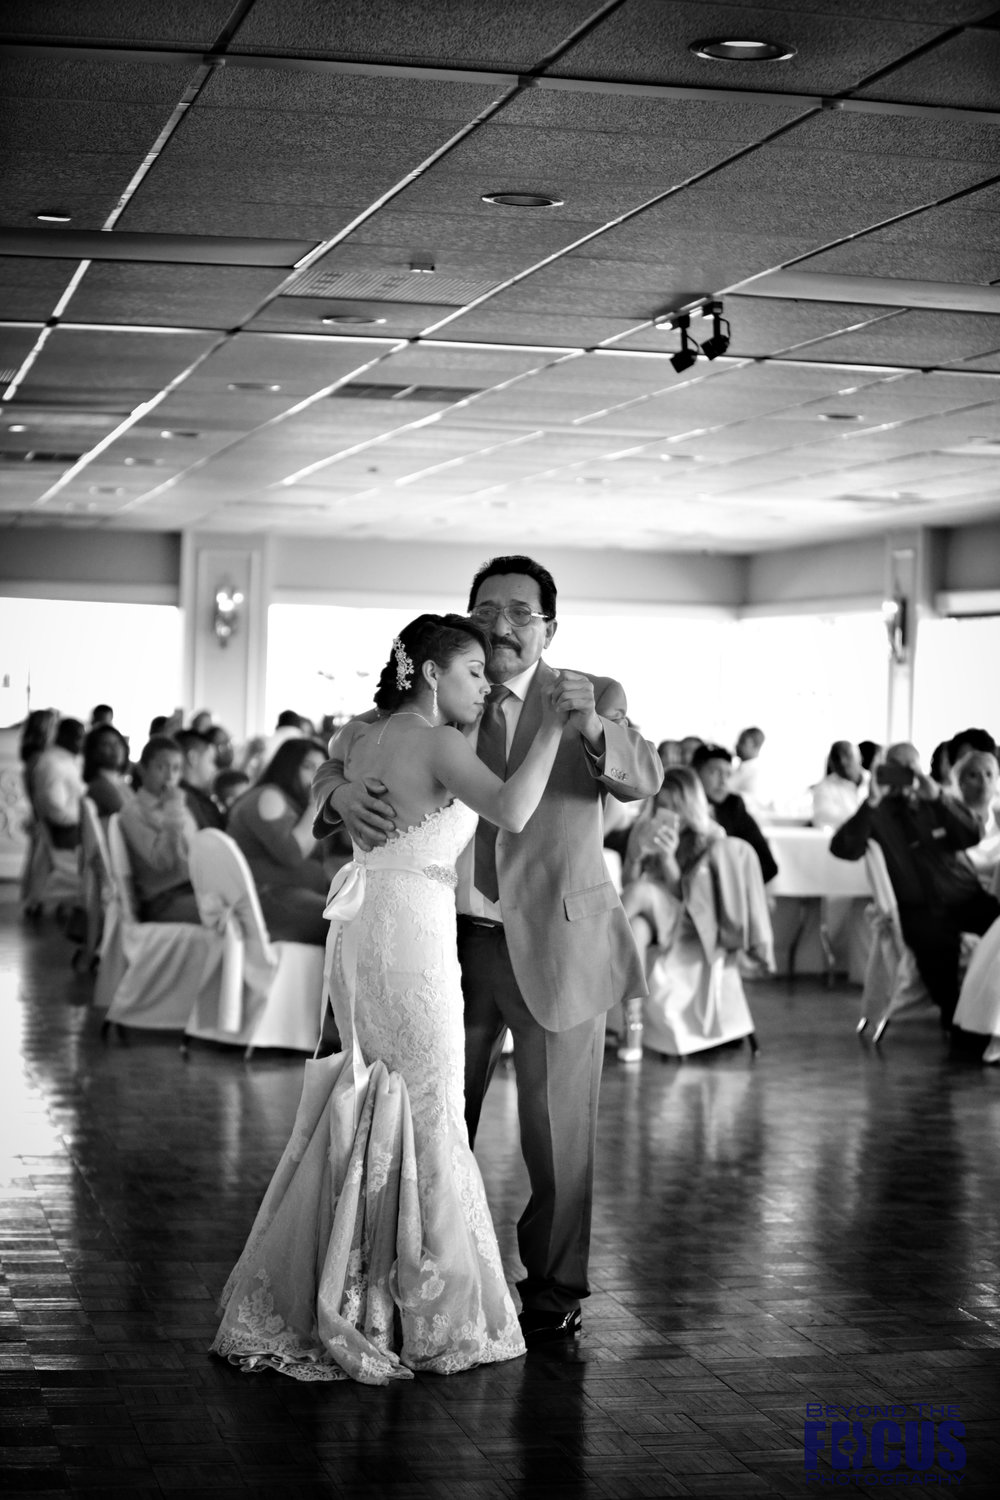 Palmer Wedding - Wedding Reception29.jpg